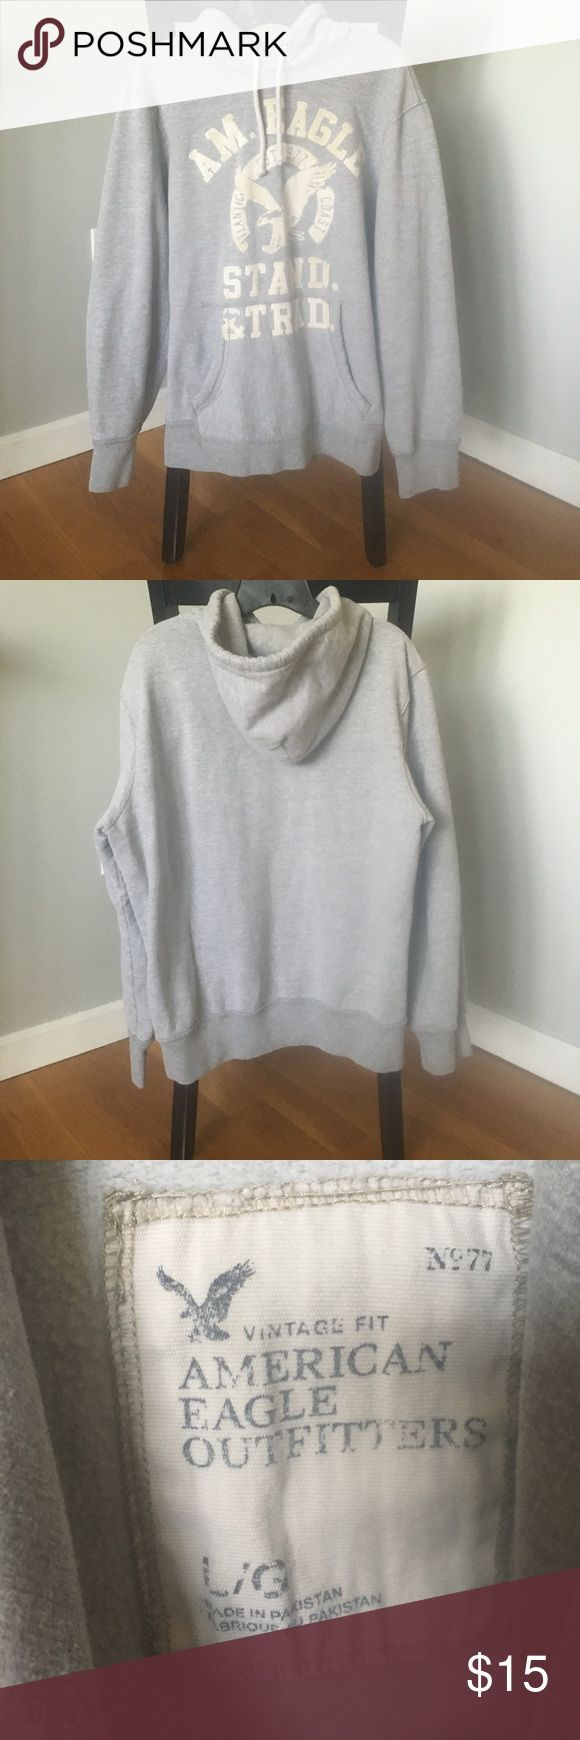 Mens gray American eagle sweatshirt size L Mens American Eagle brand gray hoodie with white graphic on front size large. Very comfortable and in great condition! American Eagle Outfitters Tops Sweatshirts & Hoodies